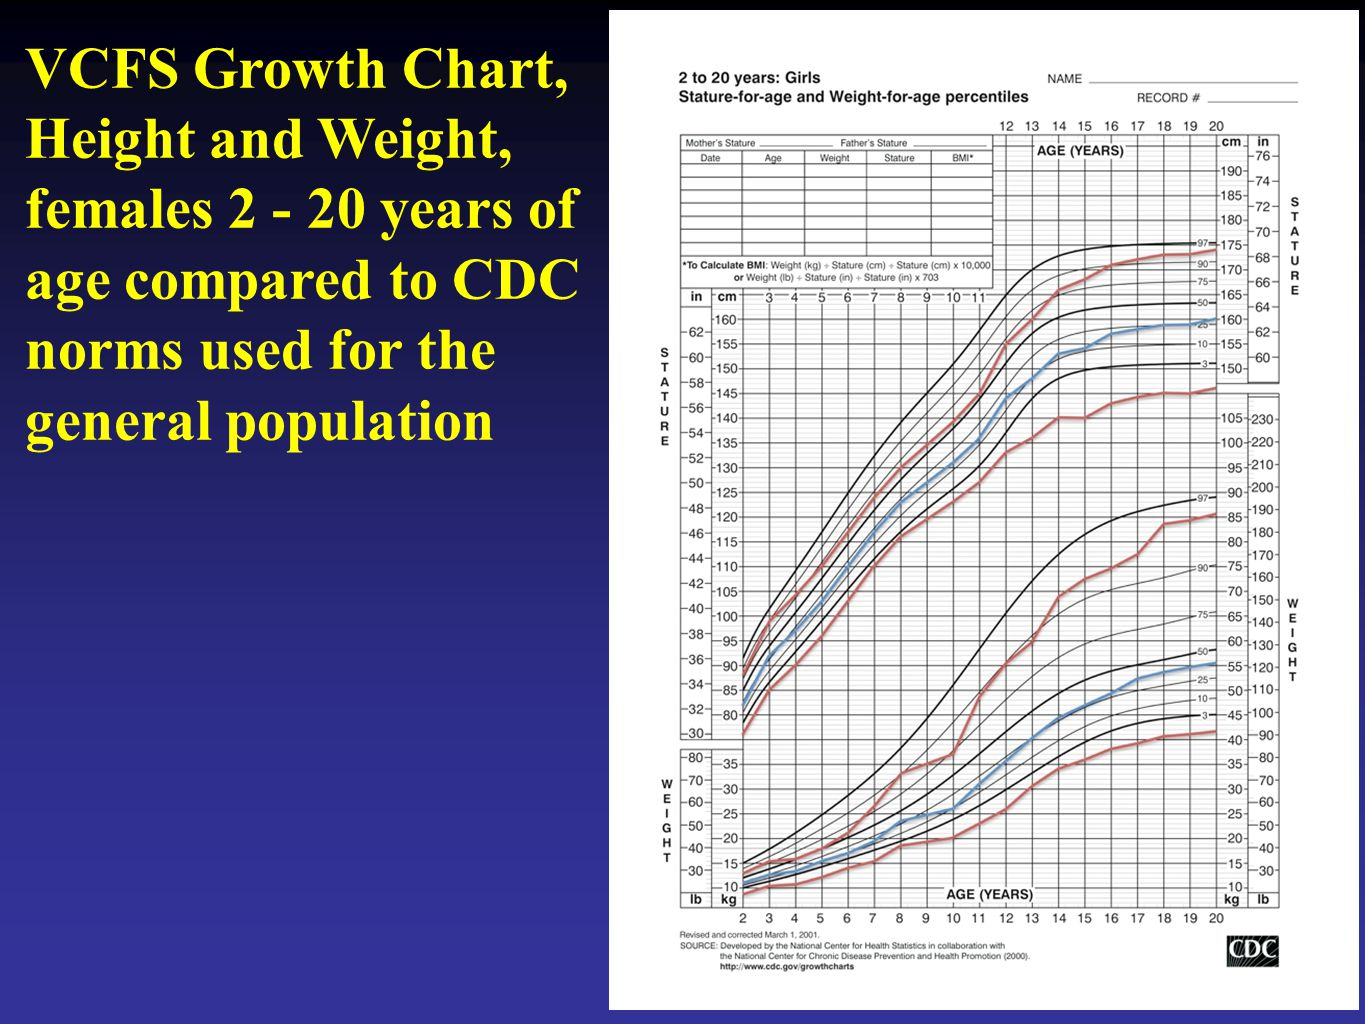 VCFS Growth Chart, Height and Weight, females 2 - 20 years of age compared to CDC norms used for the general population